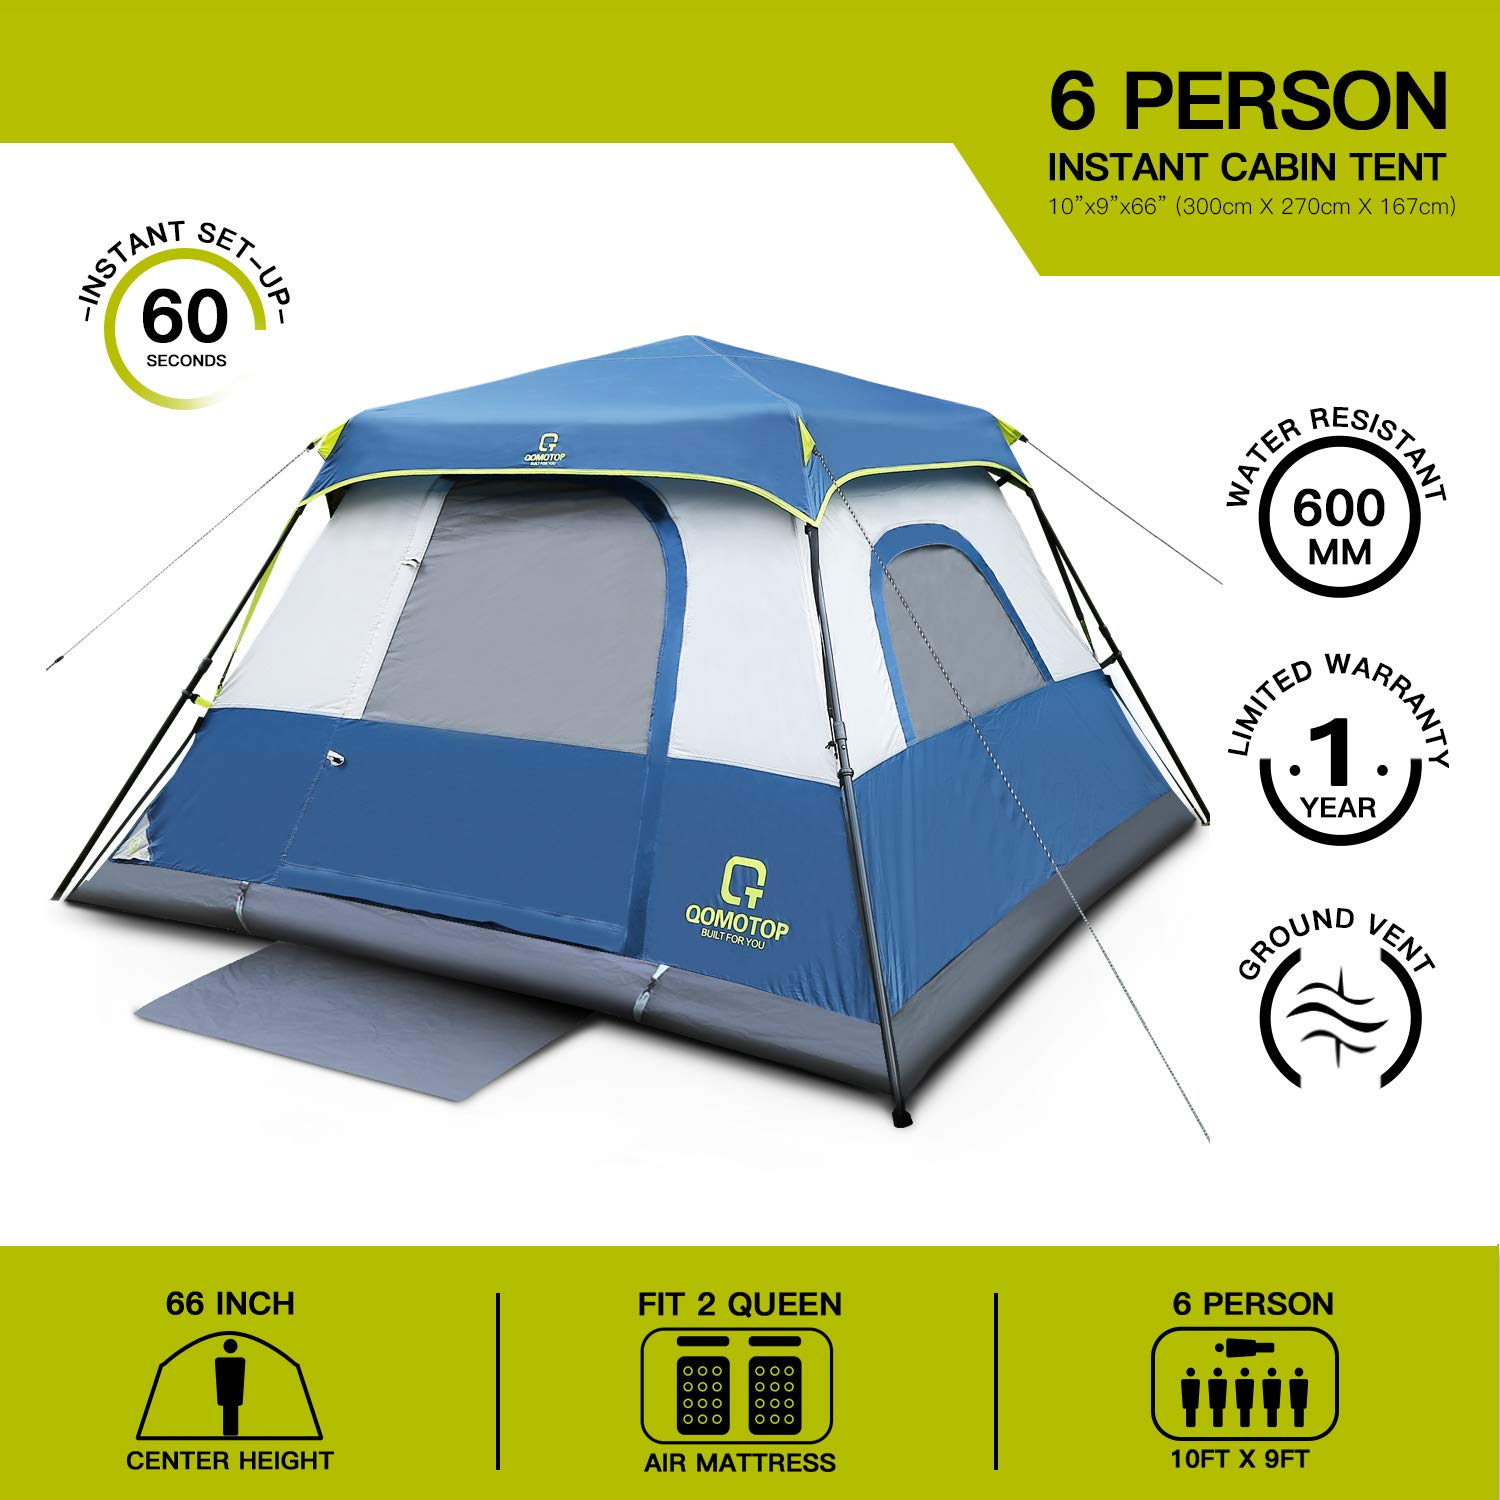 4//6//10 People Instant Set Up Within 1 Minute Tent Equipped with Rainfly and Carry Bag Water-Proof Pop up Tent with Electric Cord Acess QOMOTOP Camping Tents Light Weight Cabin Style Tent